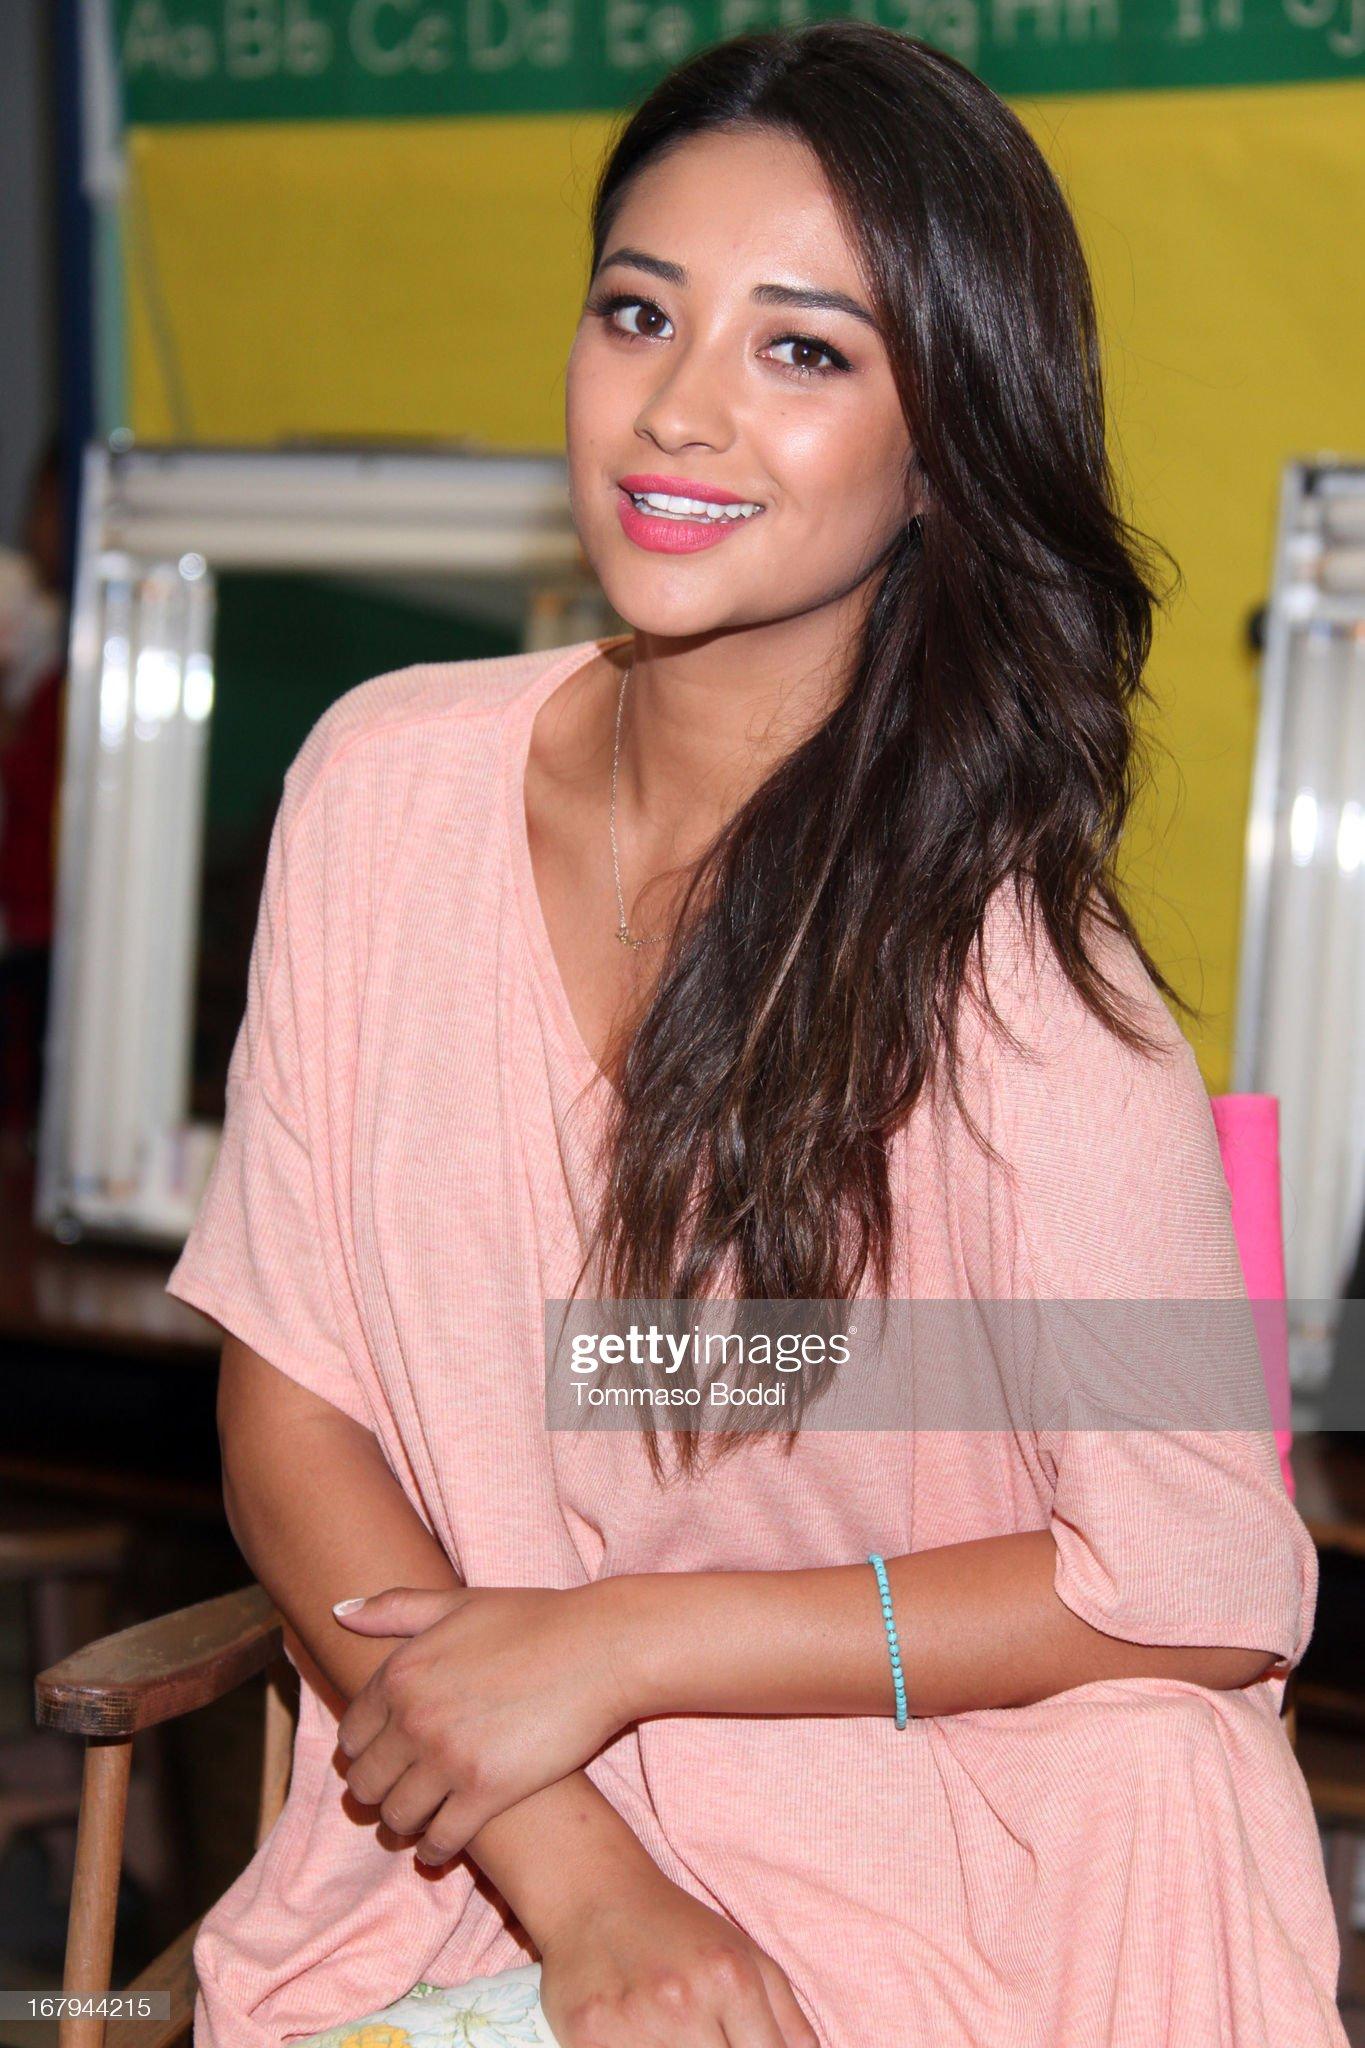 DEBATE sobre guapura de famosos y famosas - Página 3 Pretty-little-liars-star-shay-mitchell-joins-girl-power-day-to-give-picture-id167944215?s=2048x2048